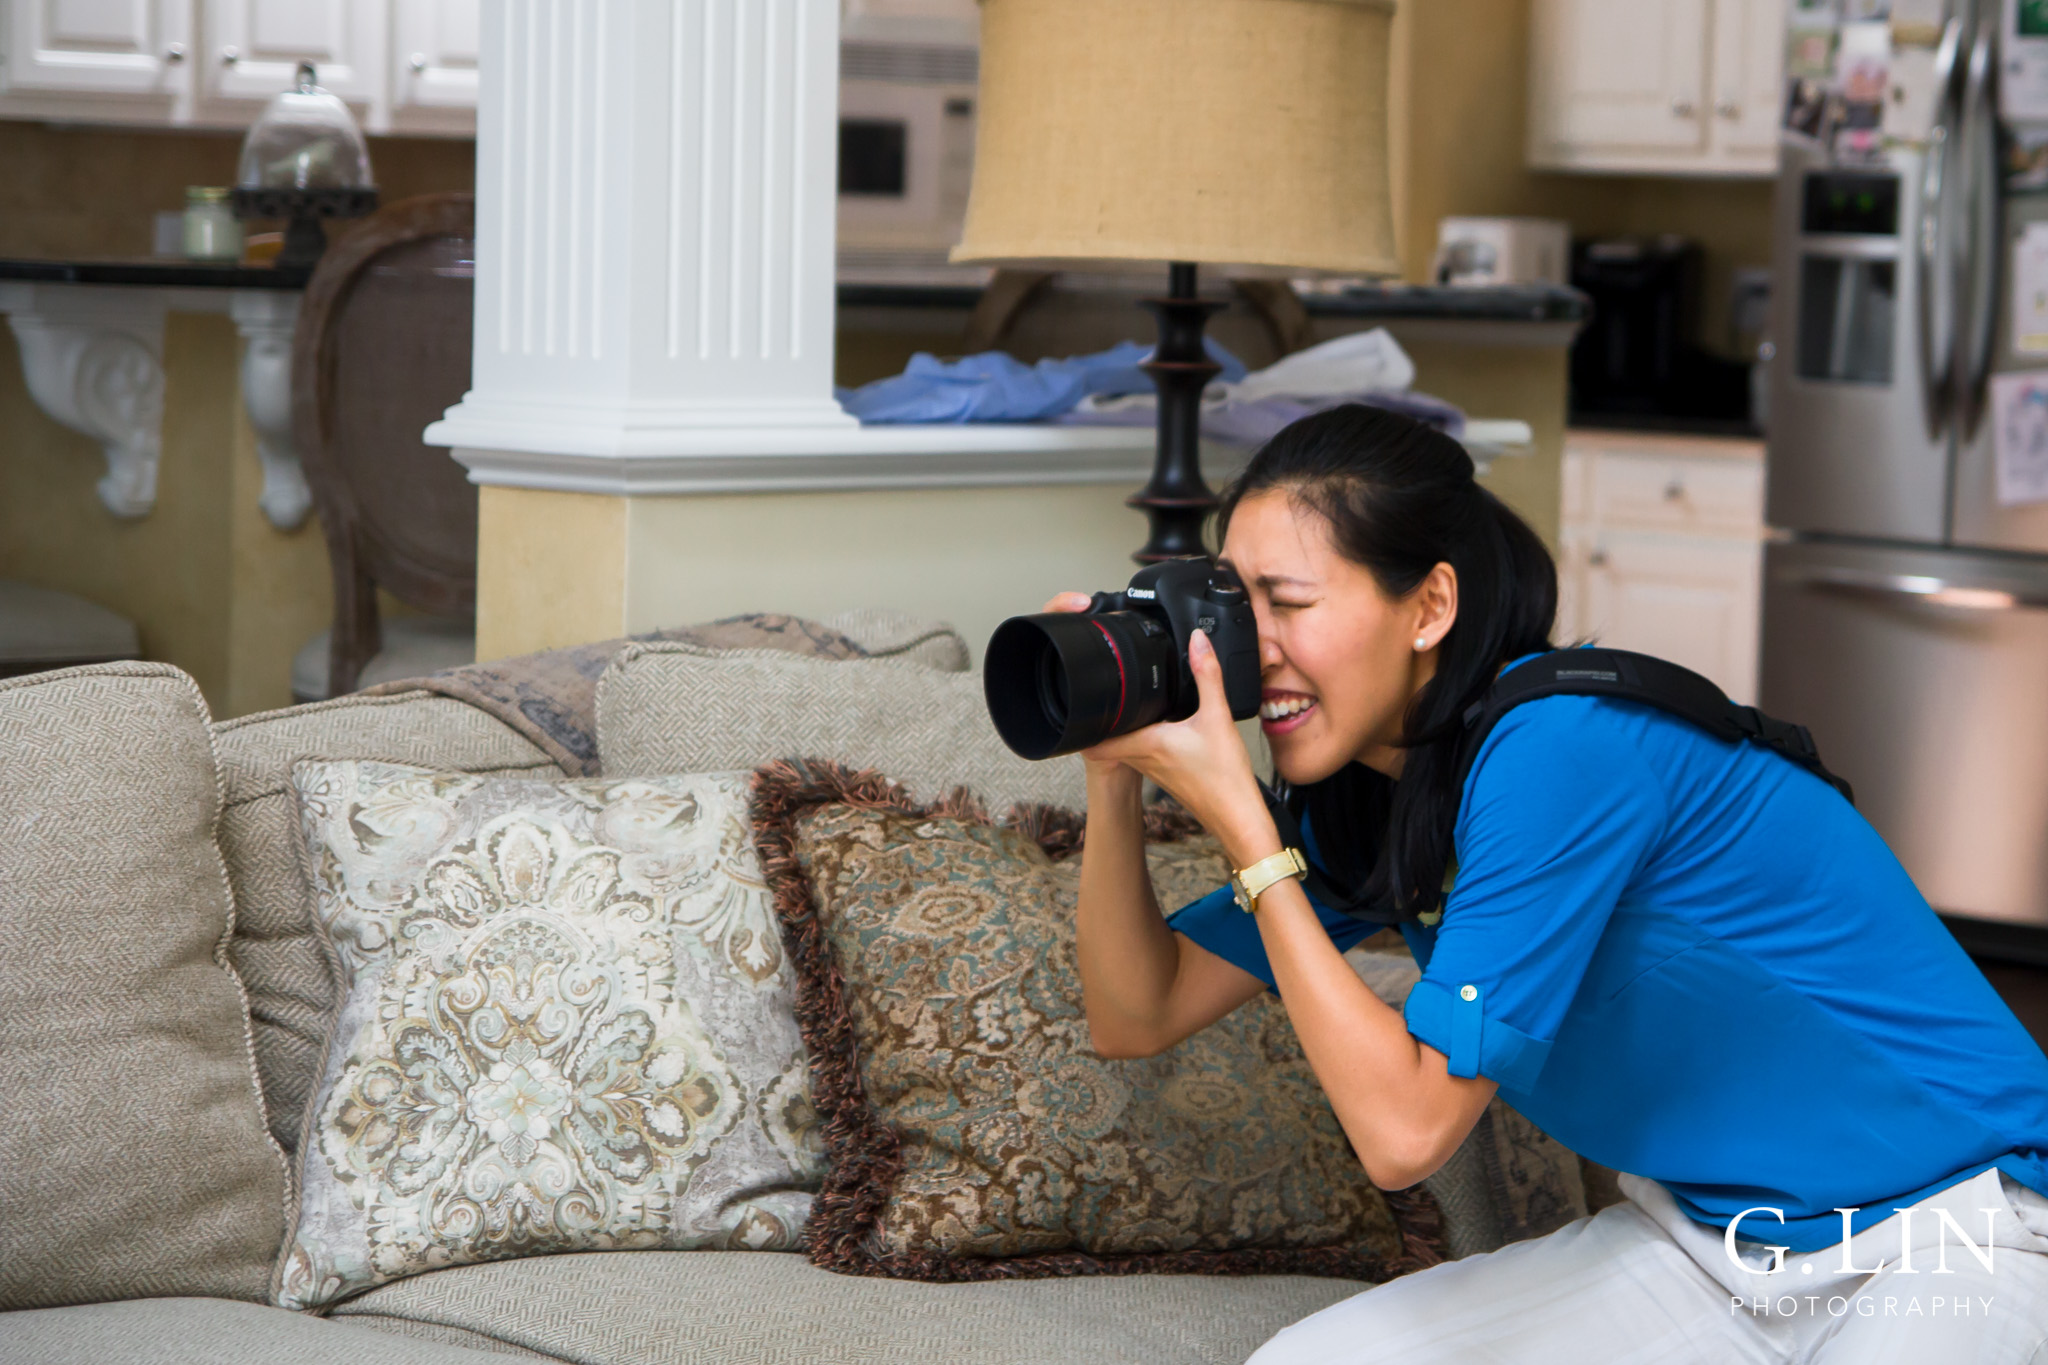 Photo of me using the camera   Family Photographer in Raleigh NC   By G. Lin Photography